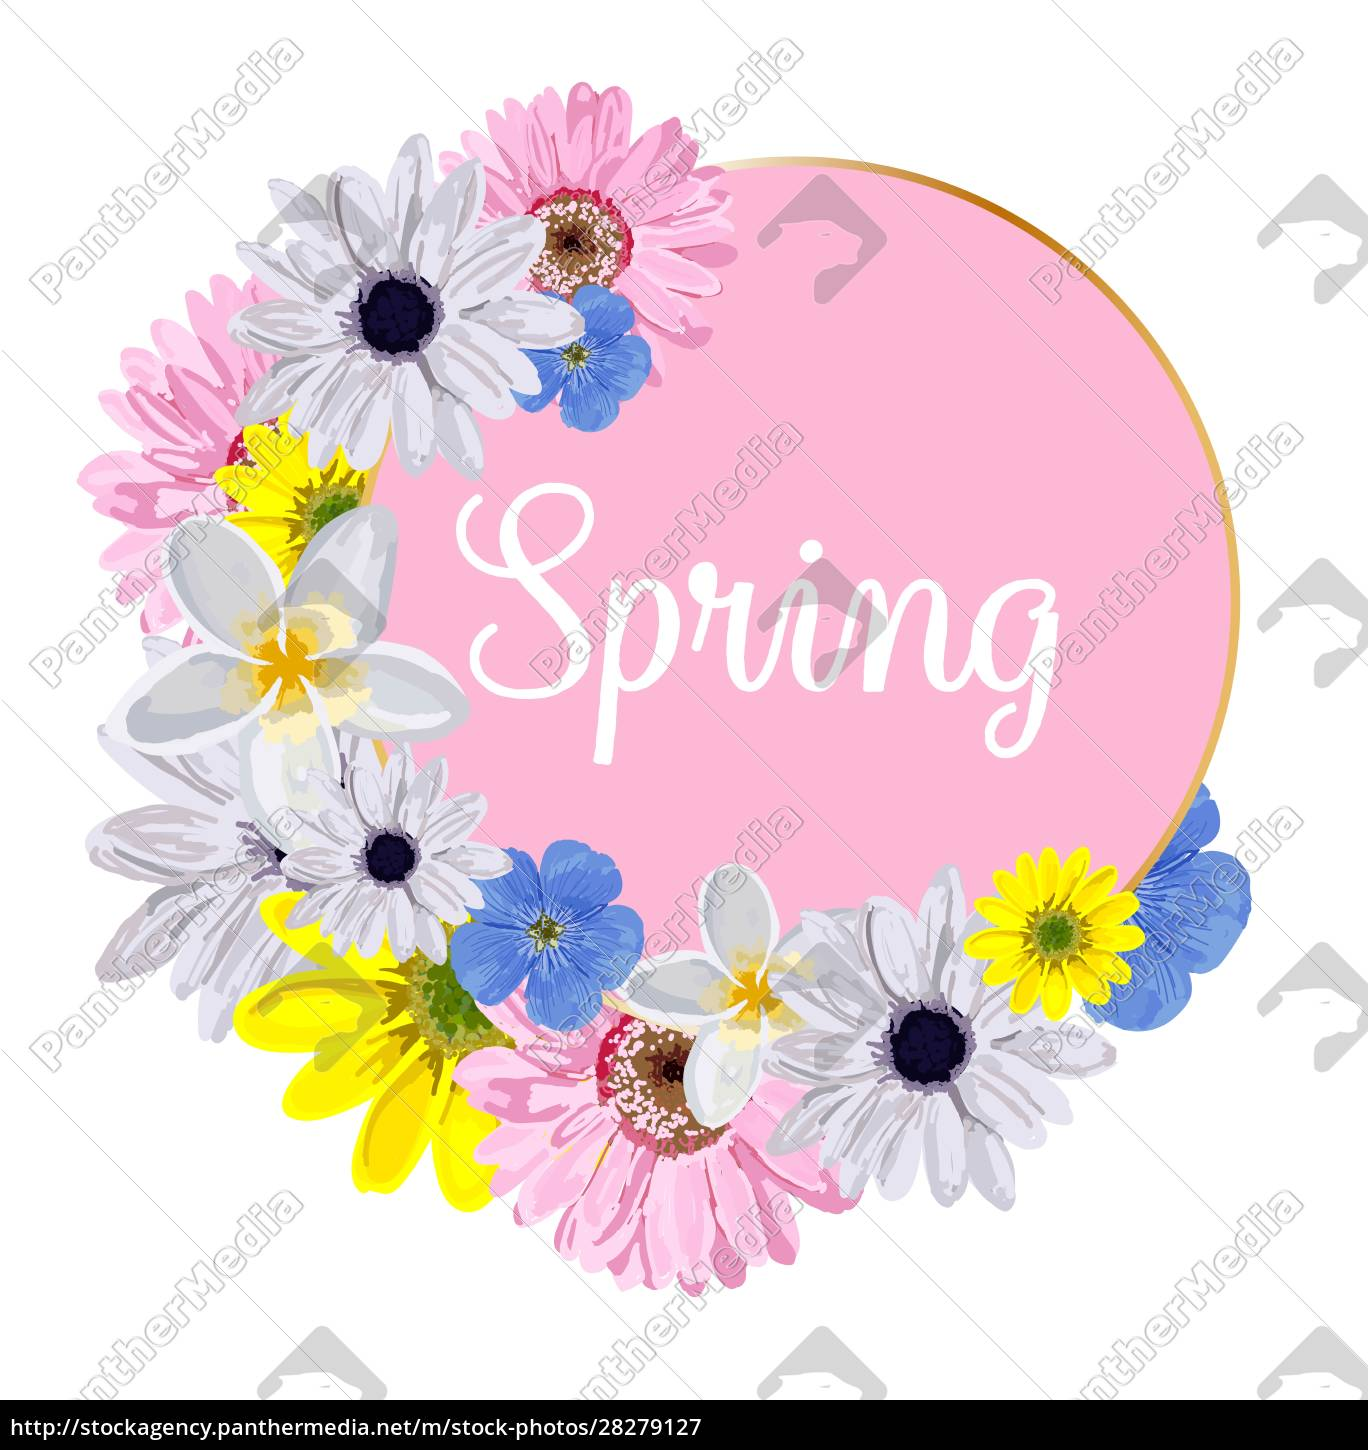 spring, hand, sketch, logo, , icon, typography - 28279127